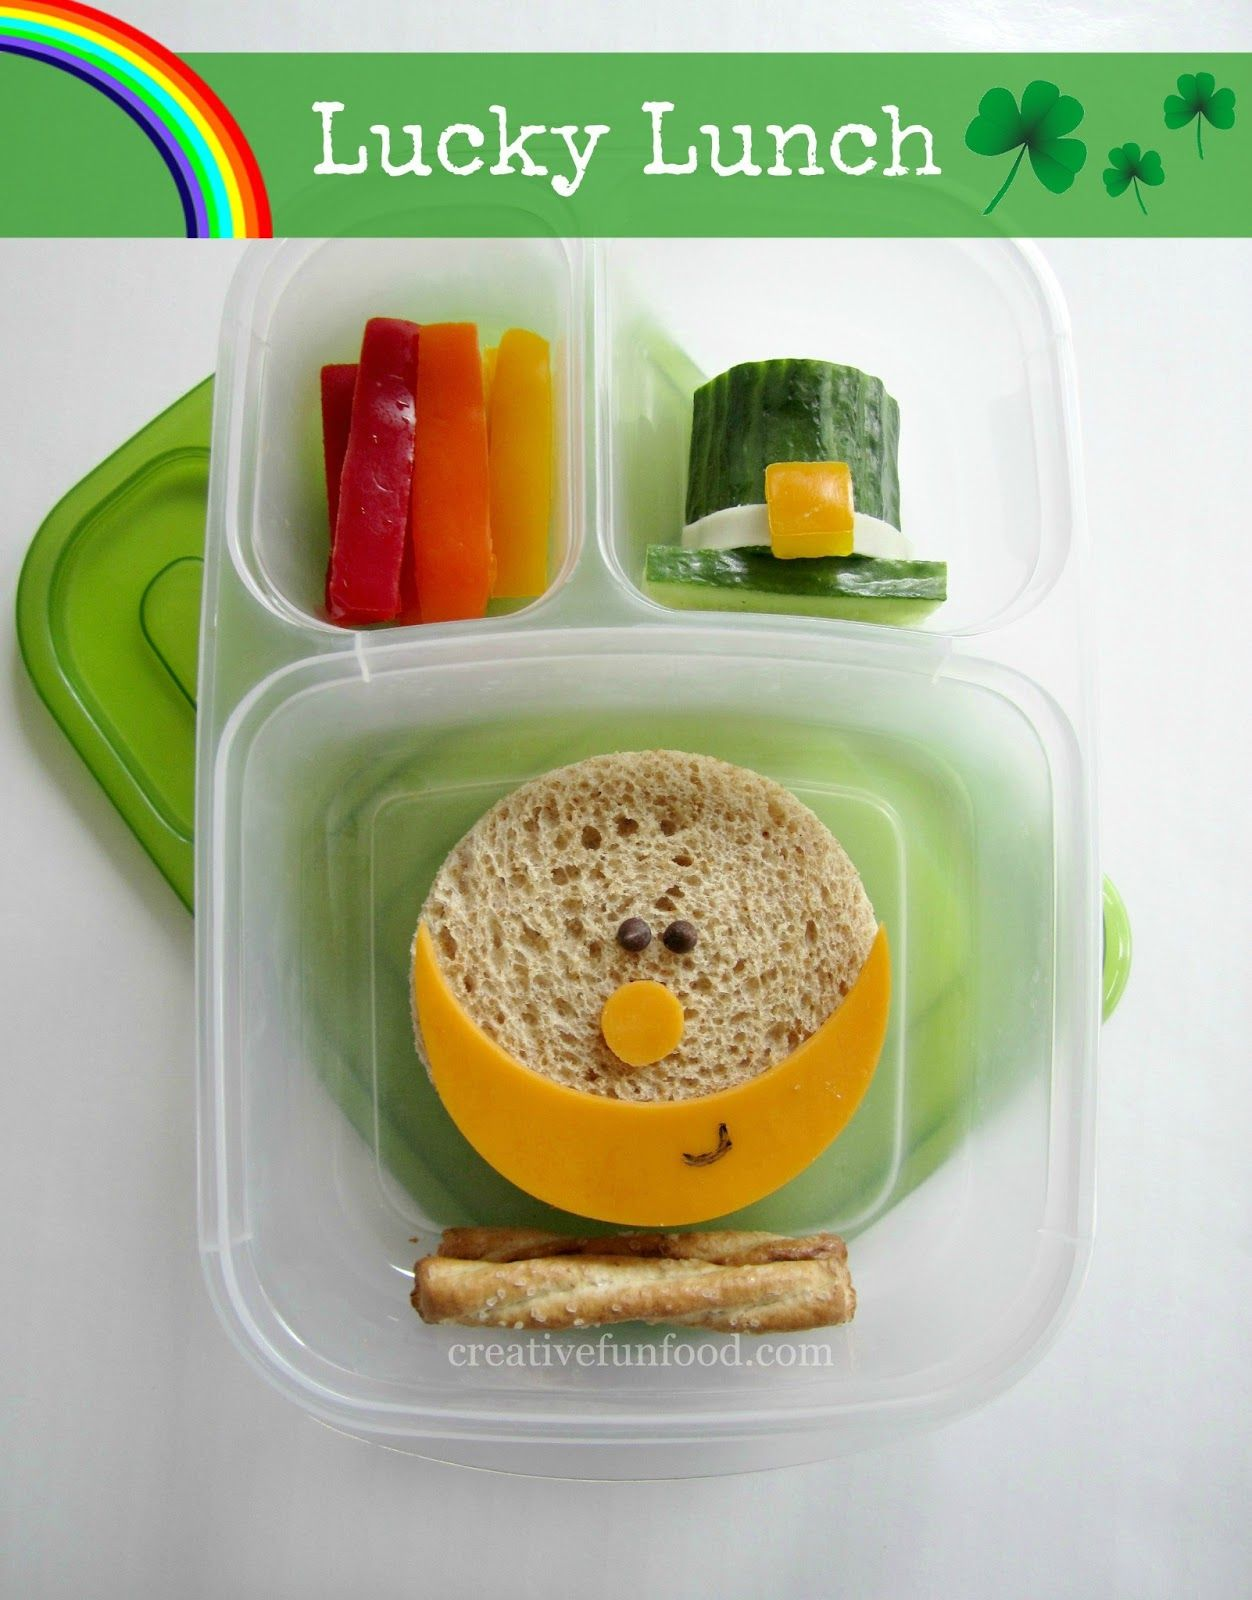 St. Patrick's Day Lucky Lunch | creativefunfood.com